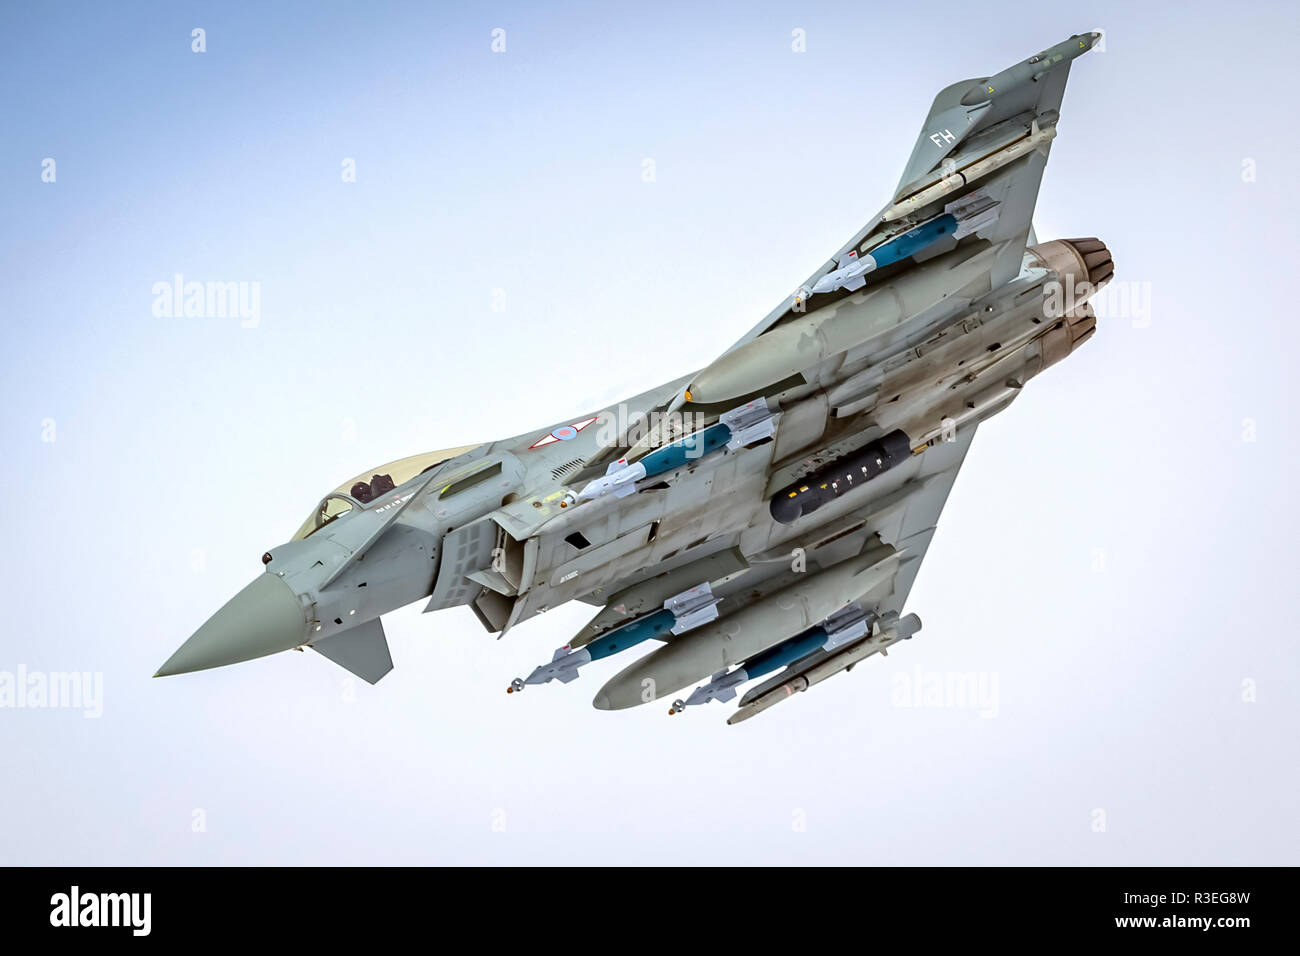 Royal Air force (RAF) Eurofighter Typhoon in flight. A twin-engine, canard-delta wing, multirole fighter. Photographed at Royal International Air Tatt - Stock Image